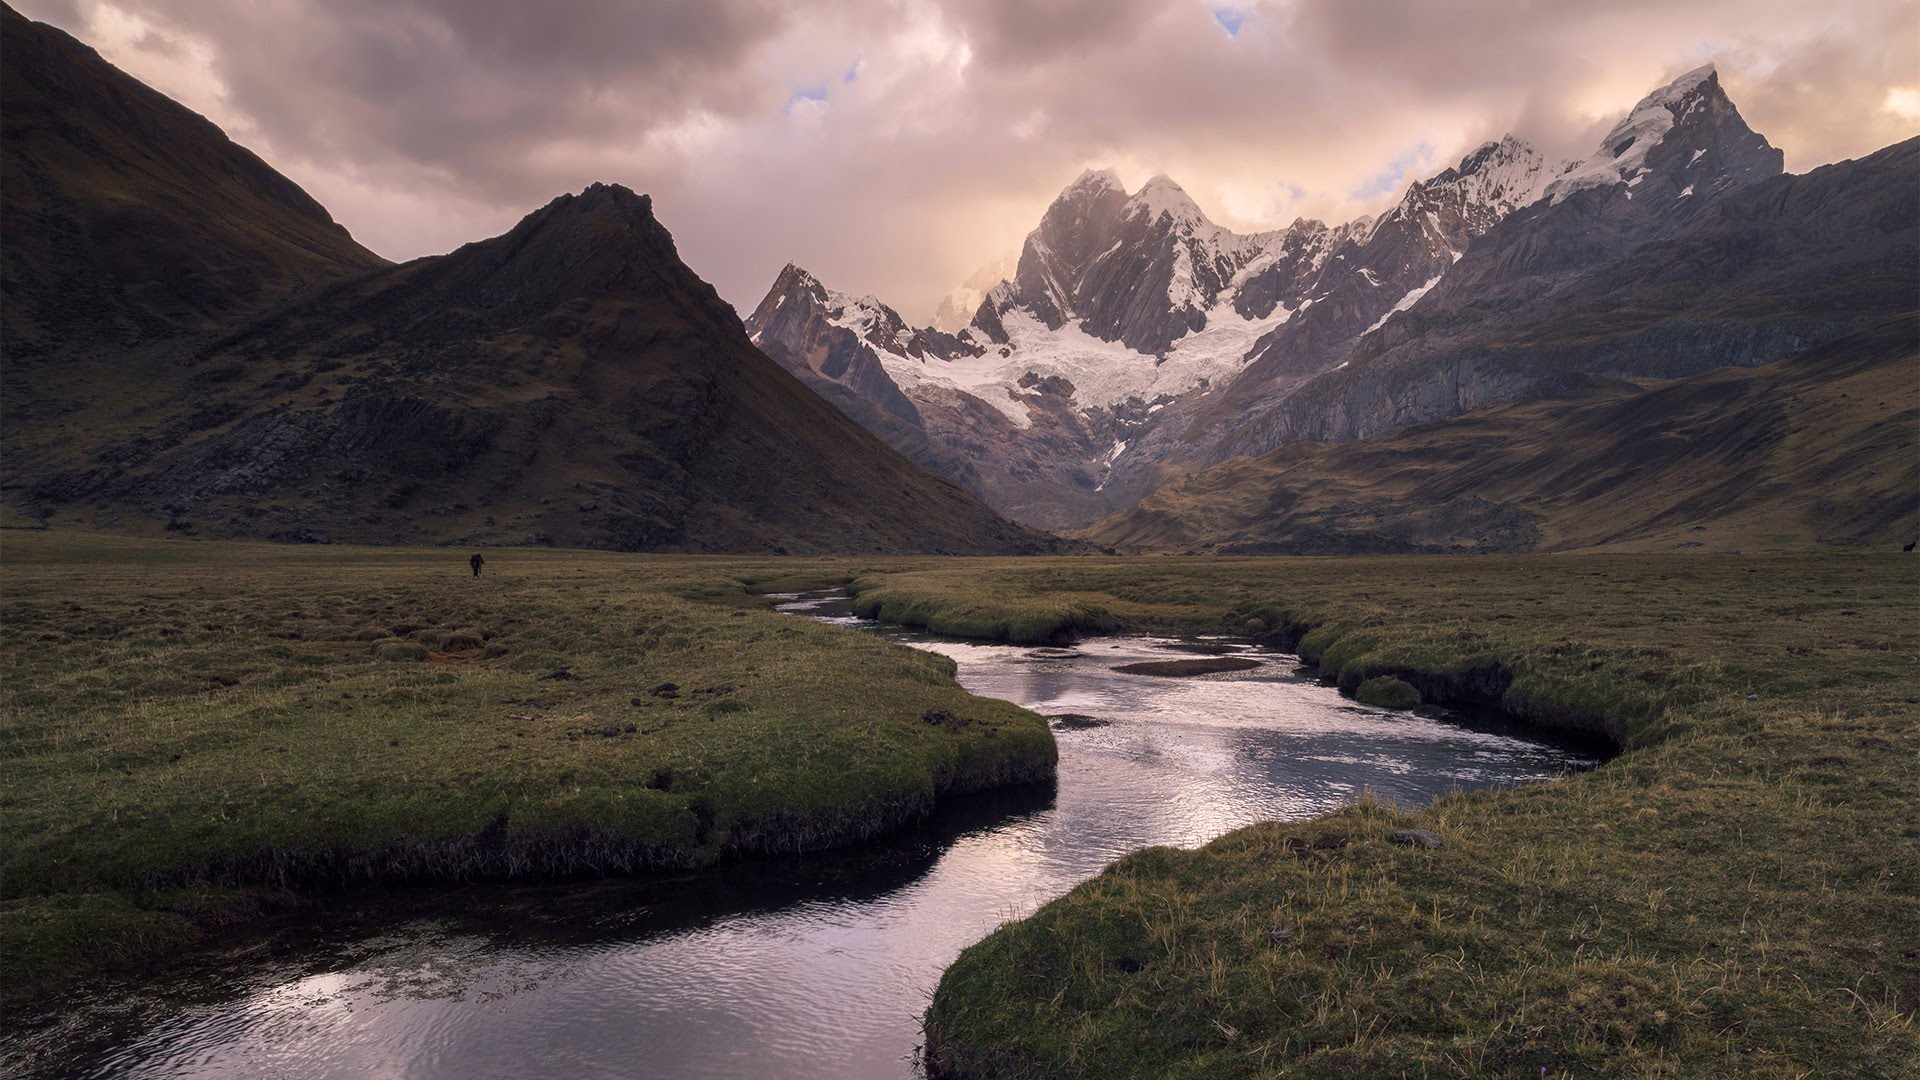 Video These Are 4 Critical Elements Of Landscape Photography You